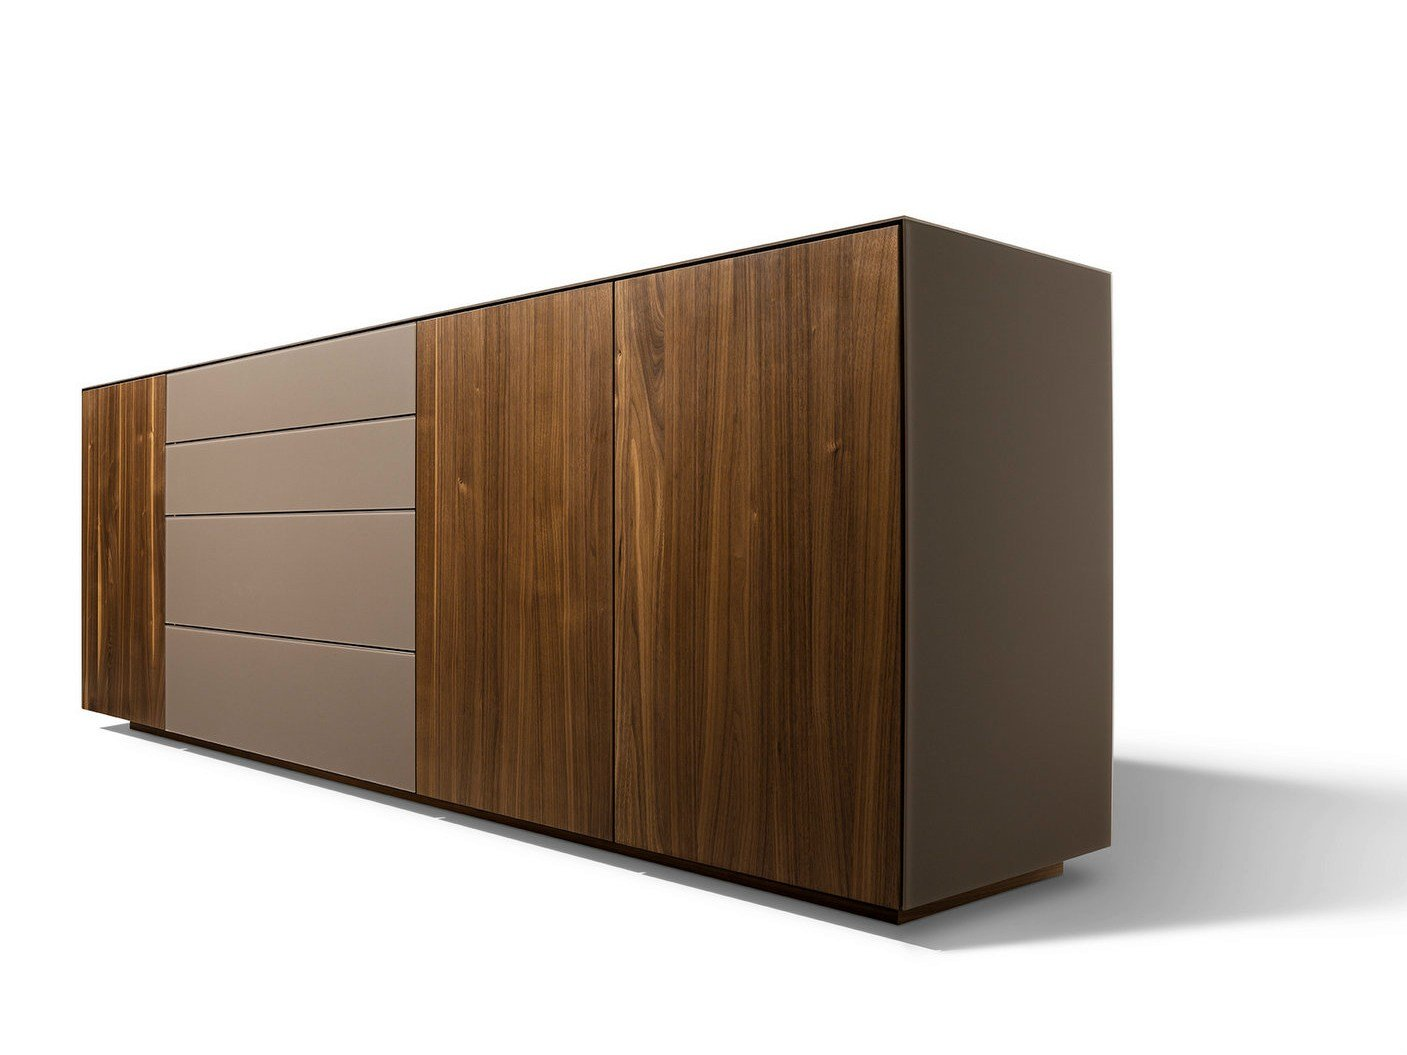 cubus pure buffet avec tiroirs by team 7 nat rlich wohnen. Black Bedroom Furniture Sets. Home Design Ideas